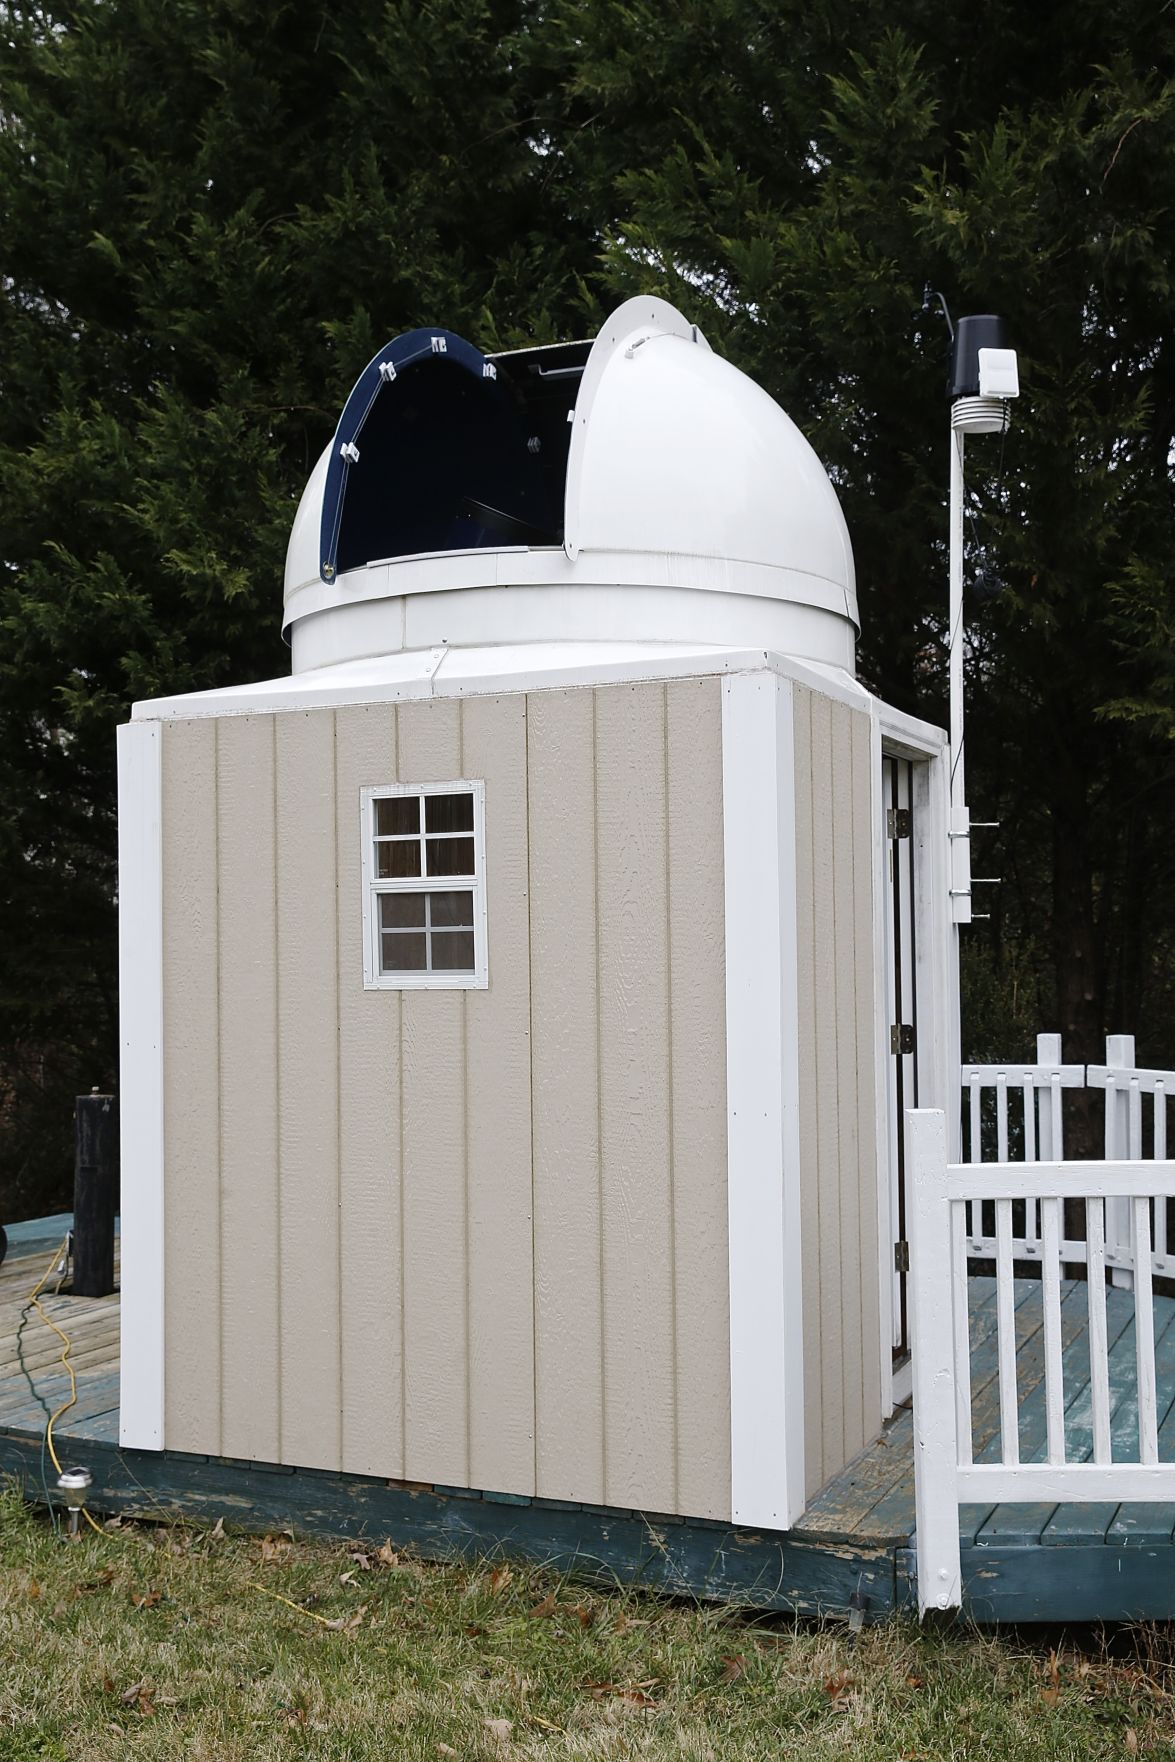 Superbe Jerry Hubbell And Myron Wasiuta Work Together To Maintain And Operate A  1865mm Telescope In Wasiutau0027s Backyard. The Online Observatory Can Be Used  By ...